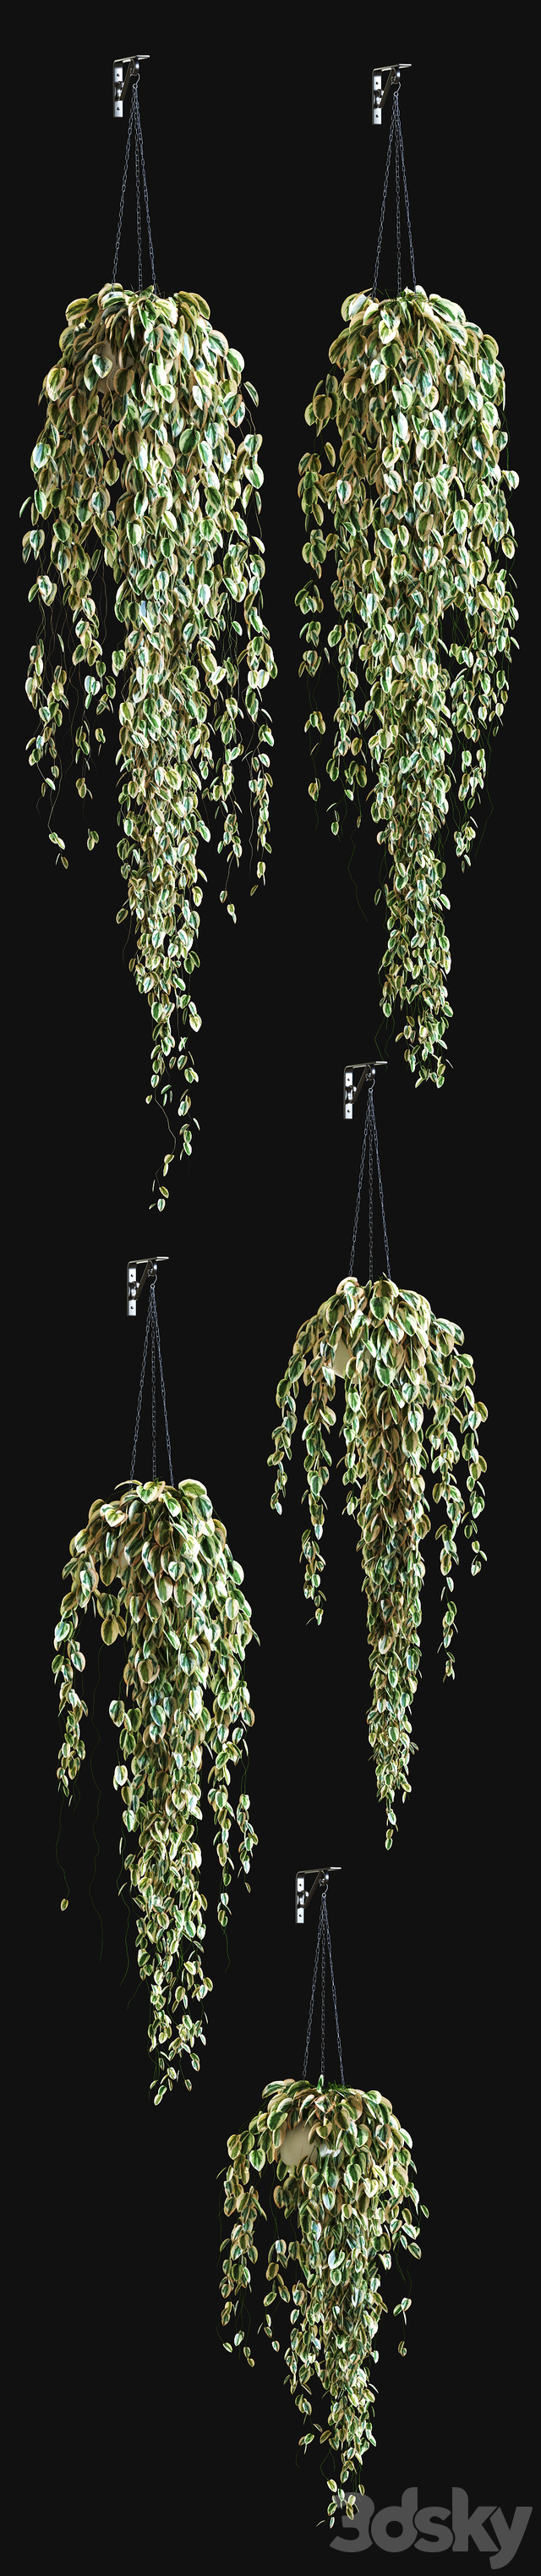 Potted plant on a chain